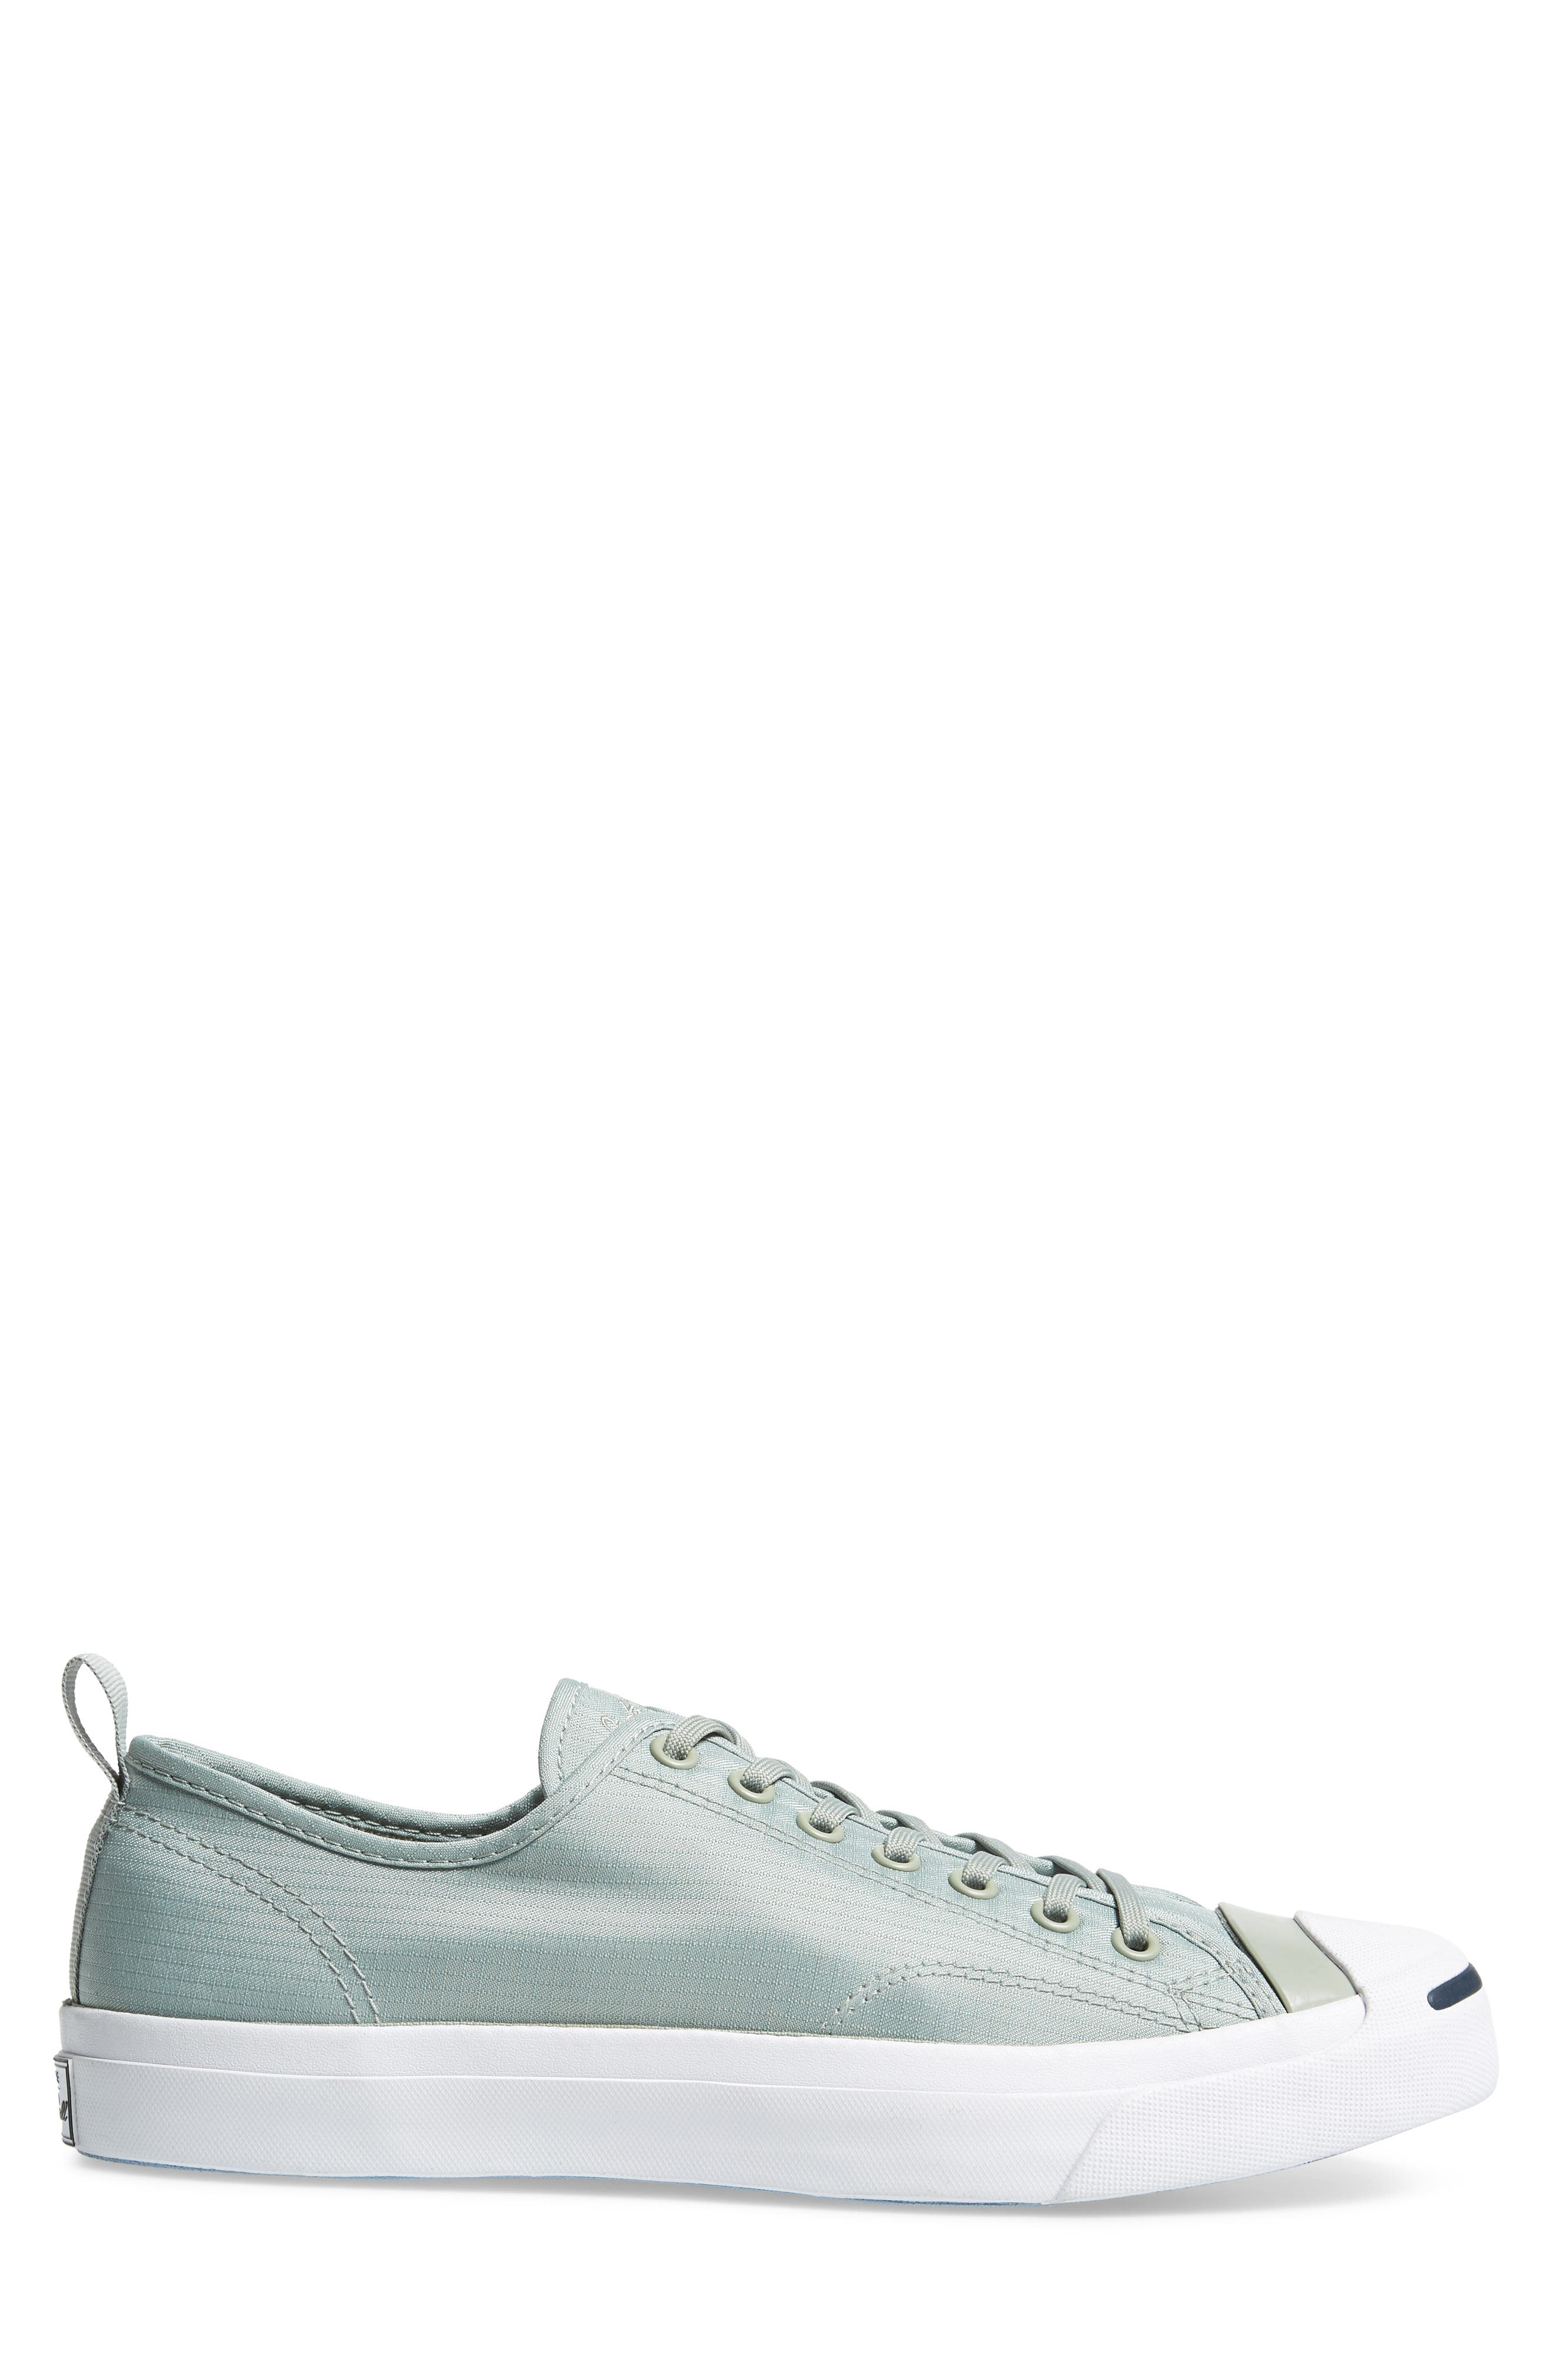 Jack Purcell Ripstop Sneaker,                             Alternate thumbnail 6, color,